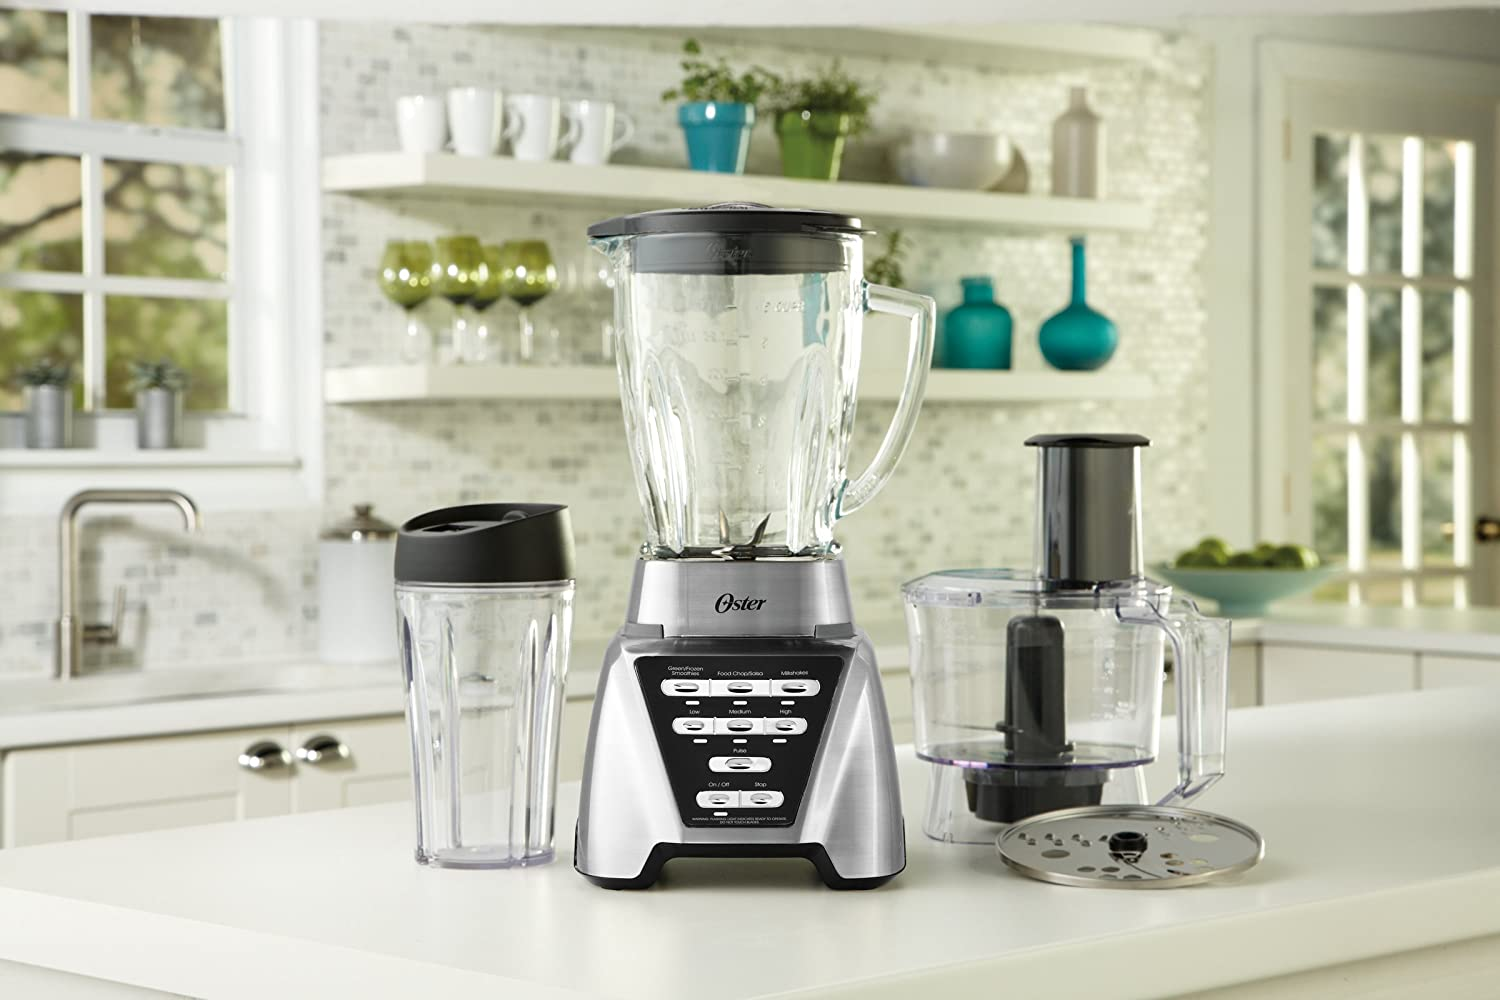 Best Blender Under $100 - Oster Blender Pro 1200 Blender